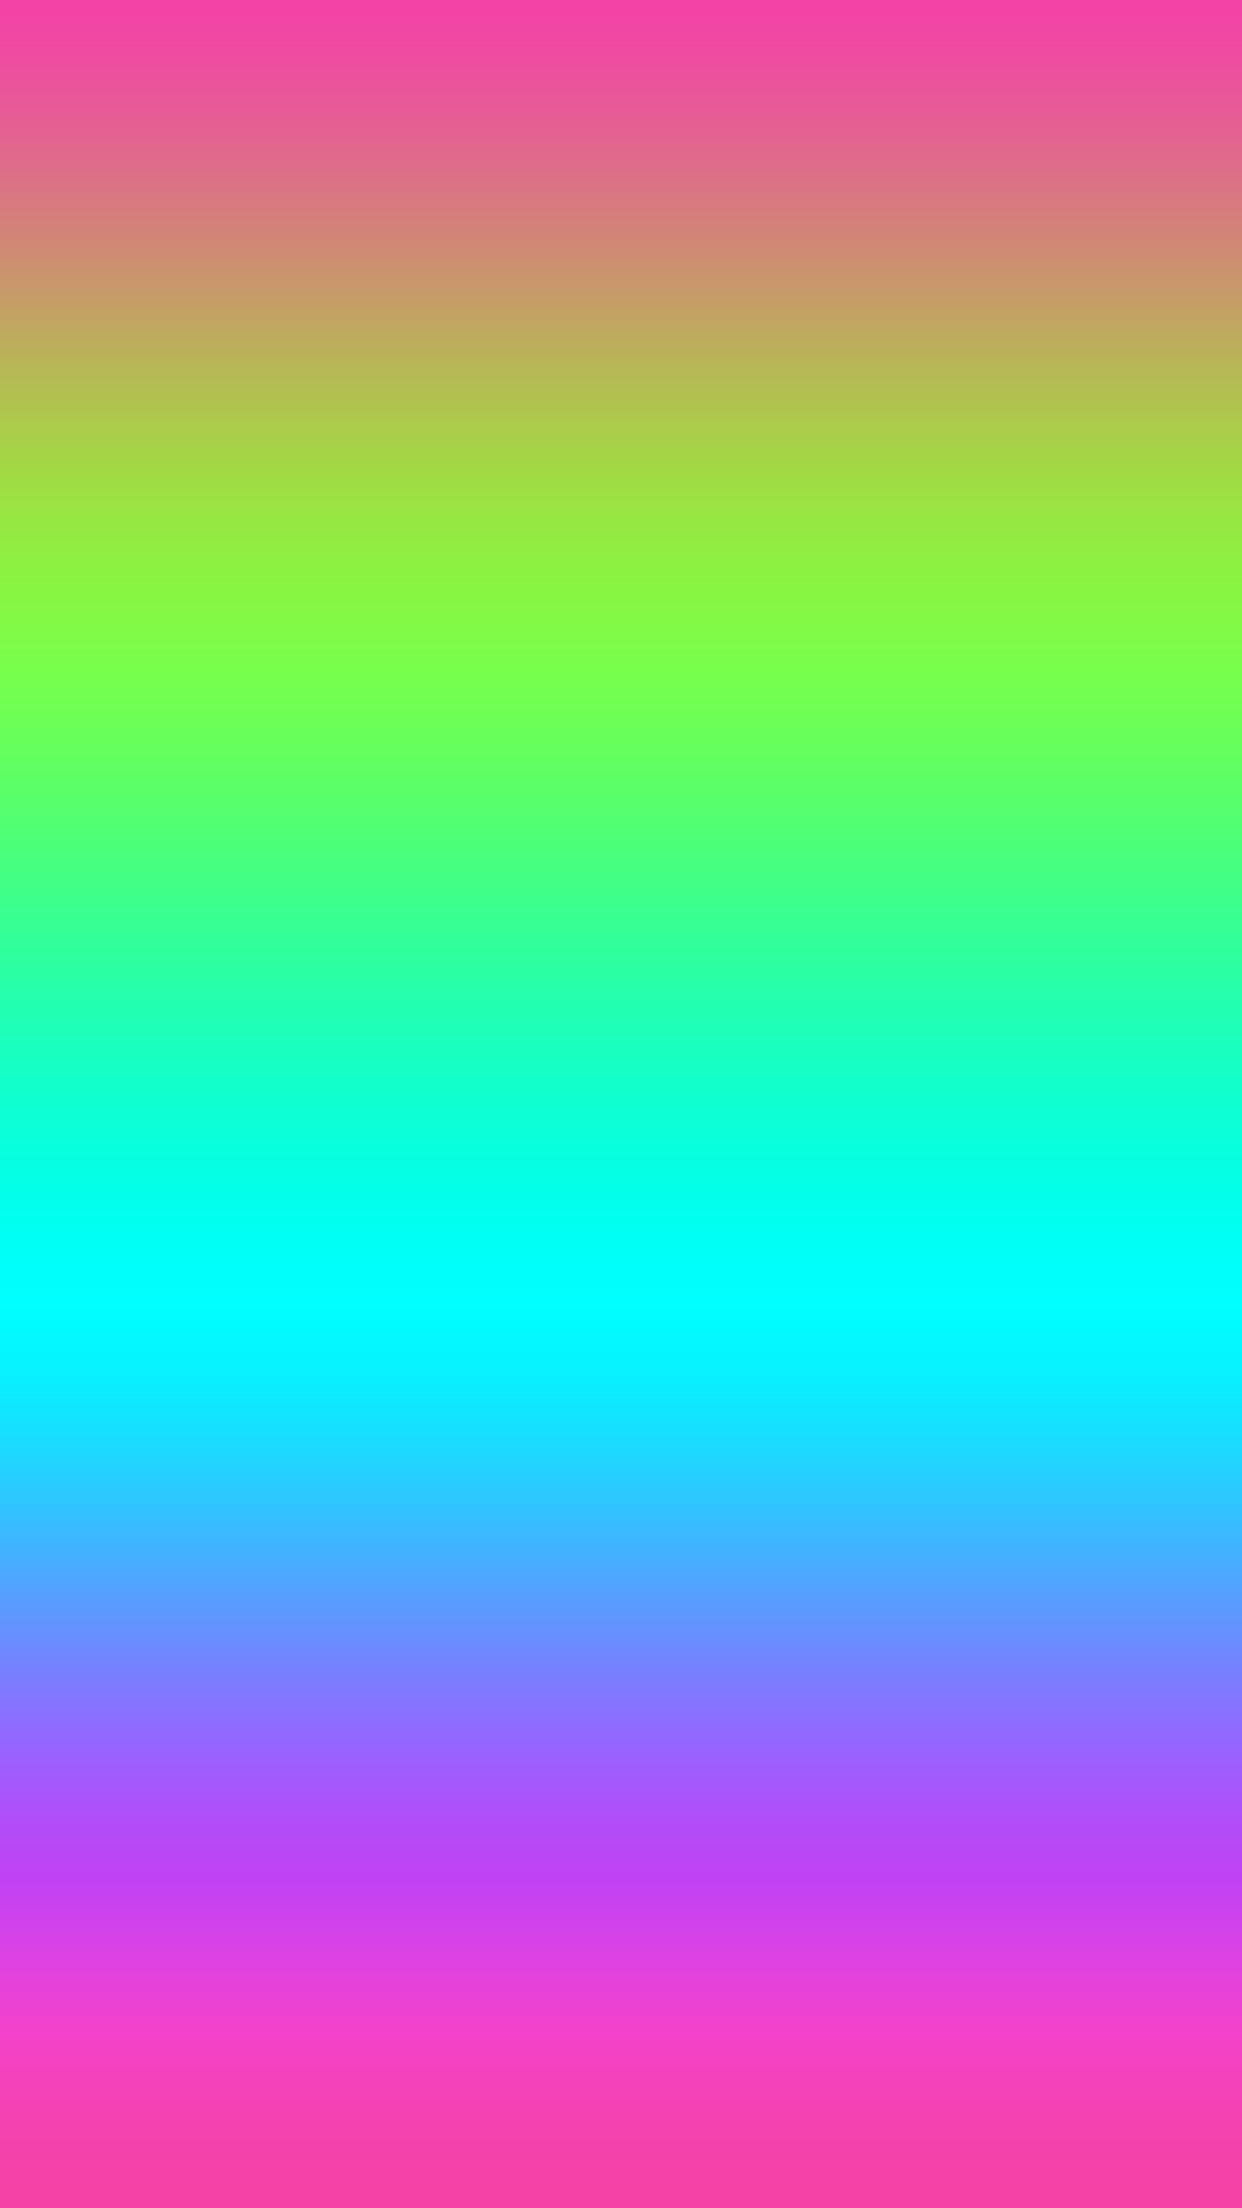 Gradient, ombre, pink, blue, purple, green, wallpaper, hd, iPhone, iPad, android, Samsung